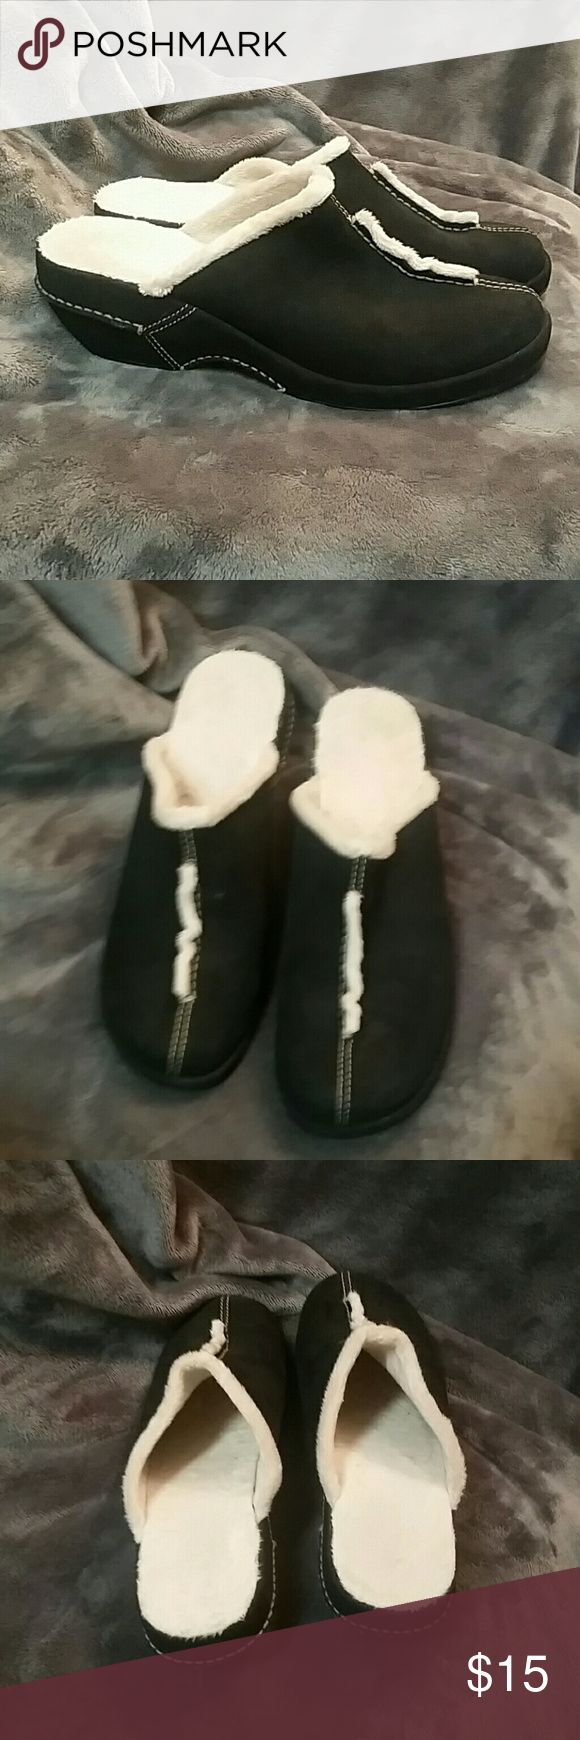 """White Mountain Black and White Clogs Black and white suede clogs by White Mountain. The white is very fuzzy """"faux fur"""" and it lines the inside of the clog. To my knowledge the suede is real leather. He heel is about and inch and a half. Never been worn outside of trying them on a few times, just like new! Smoke free home. White Mountain Shoes Mules & Clogs"""